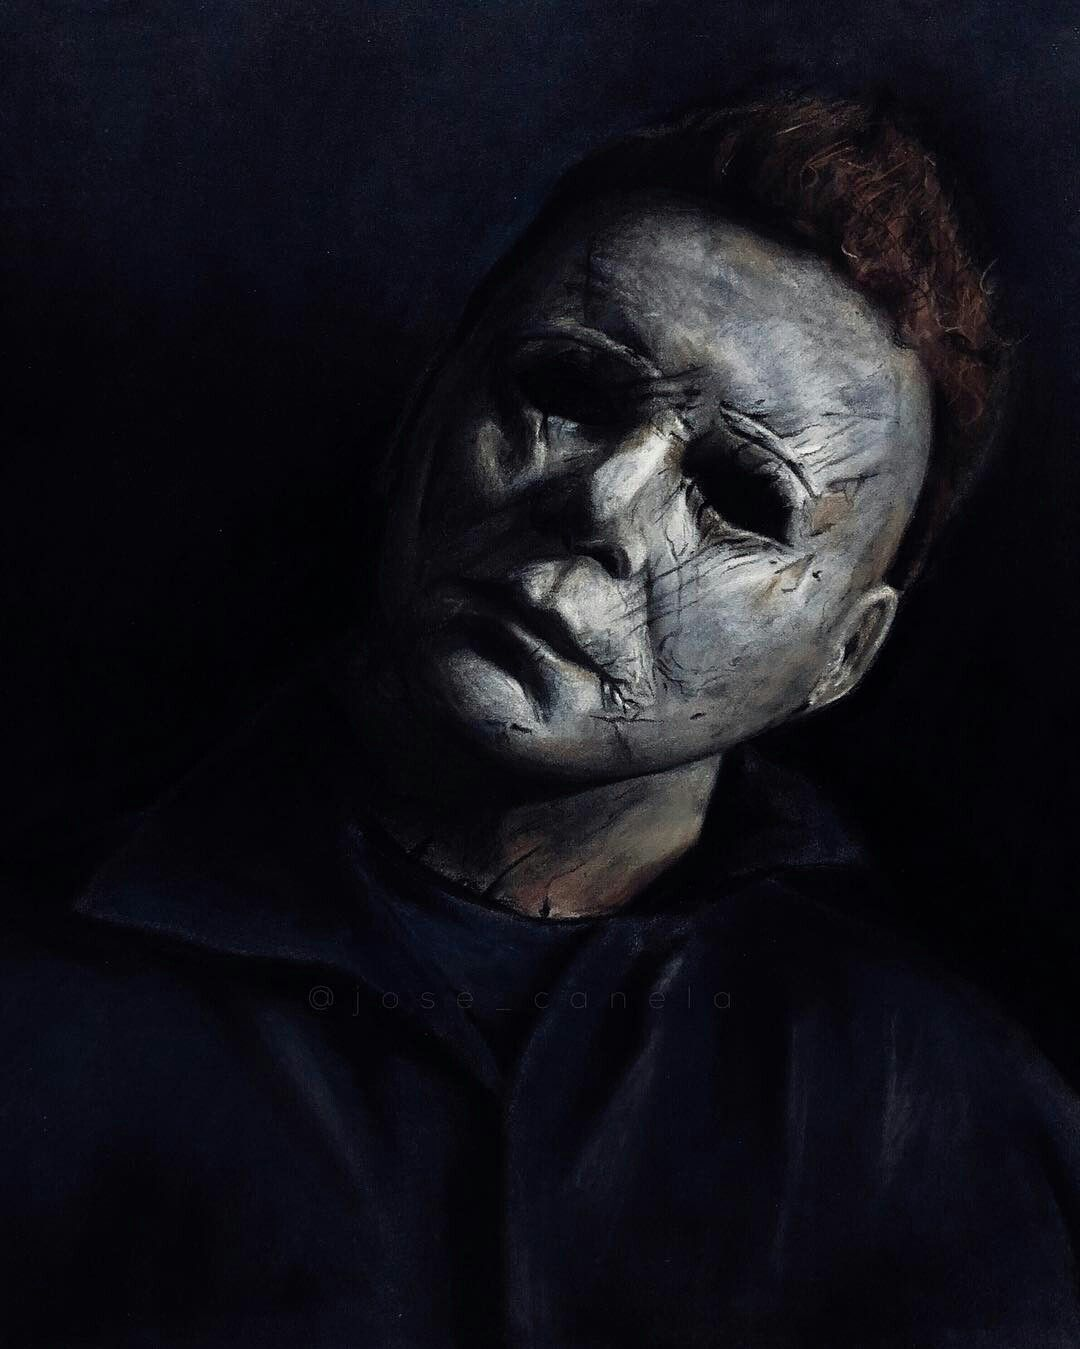 Michael Myers Iphone Wallpapers Top Free Michael Myers Iphone Backgrounds Wallpaperaccess